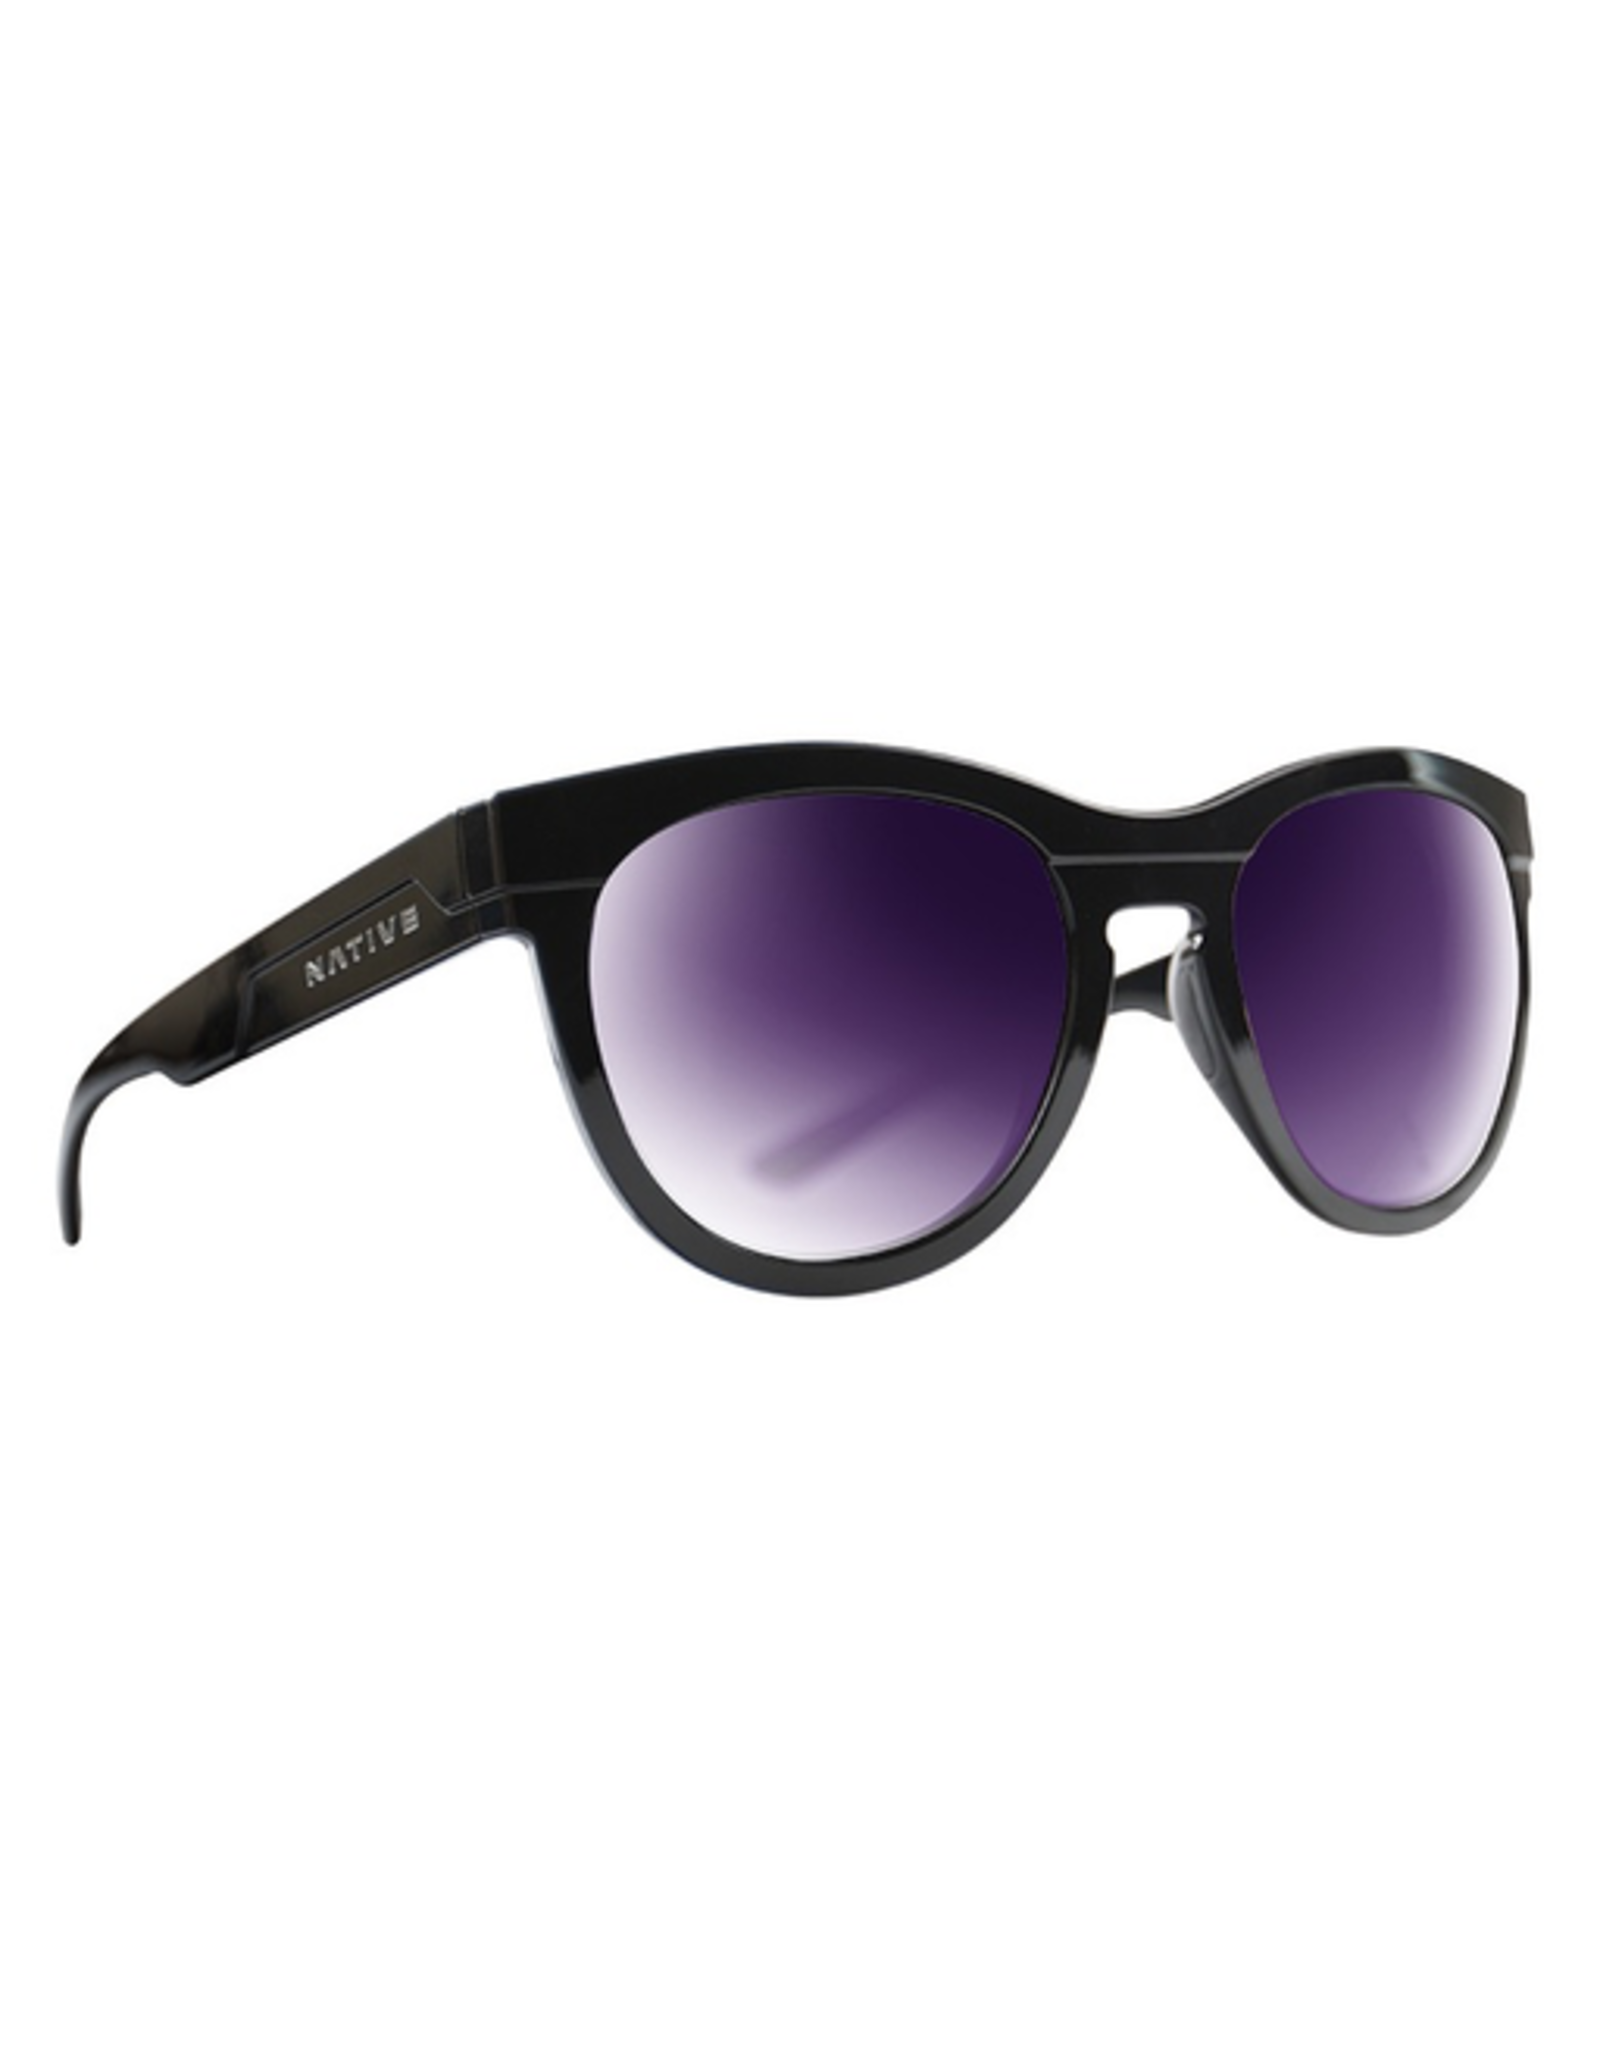 Native Eyewear Native Sunglasses La Reina, Frame Gloss Black, Lens Violet Reflex